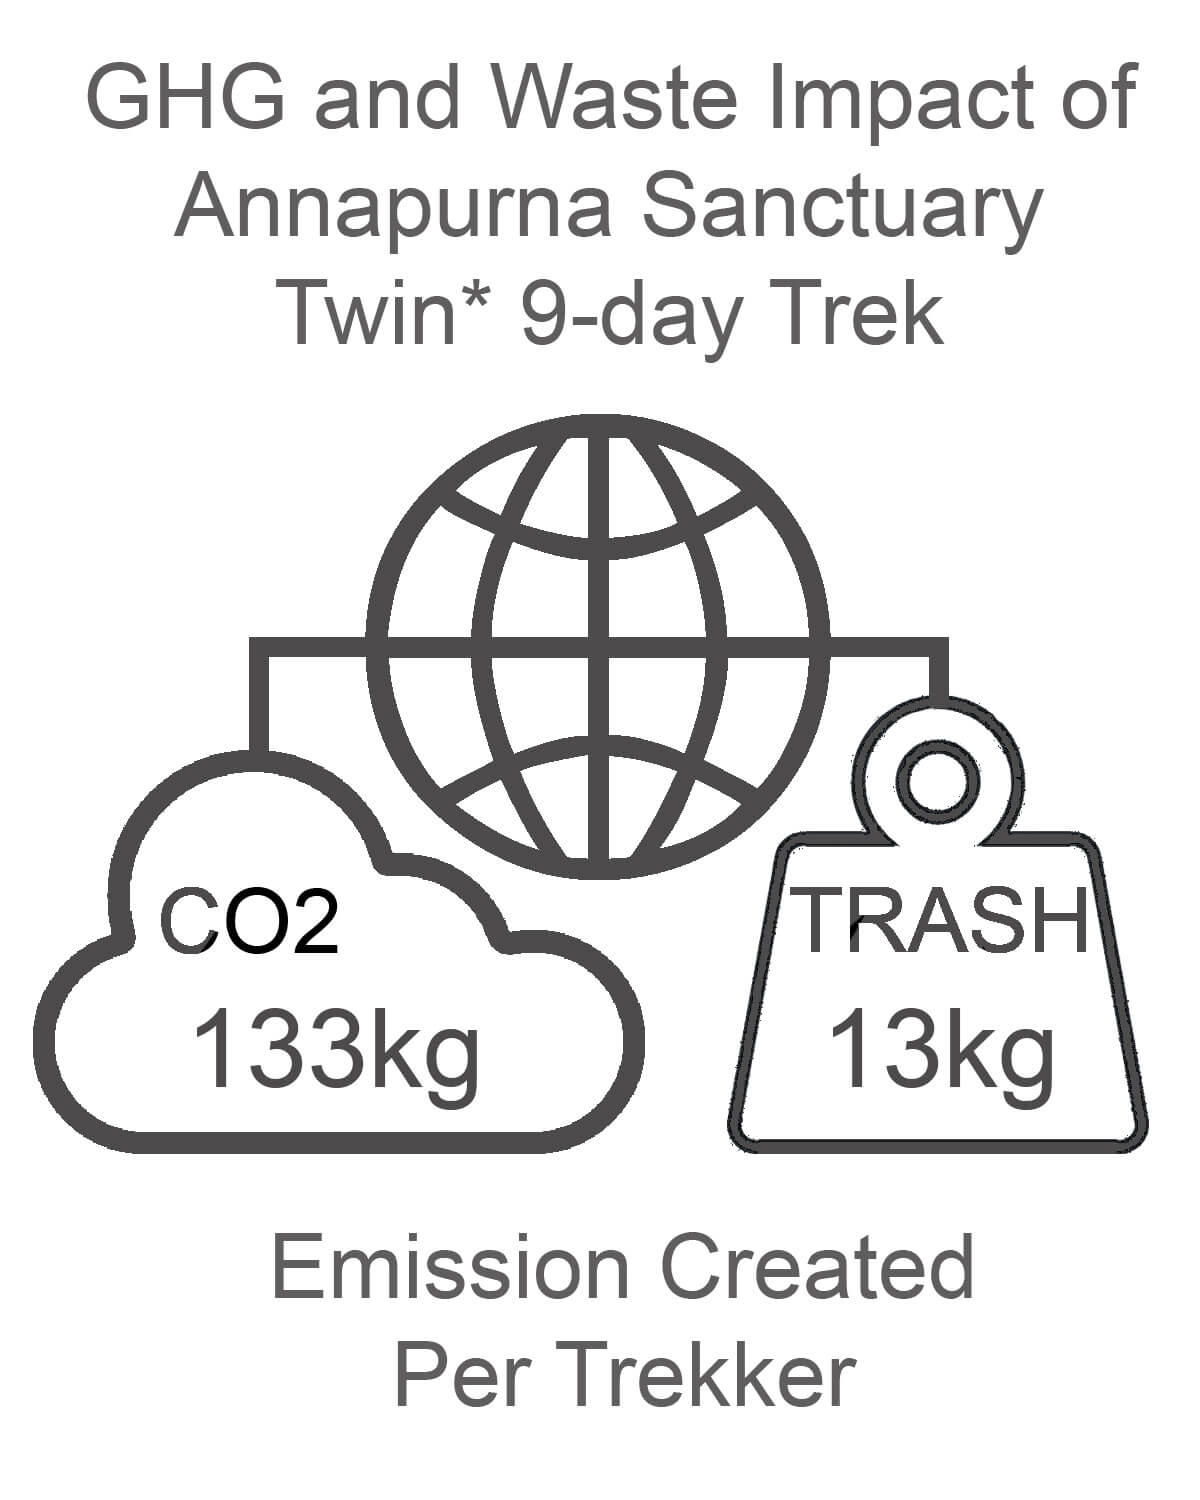 Annapurna Sanctuary GHG and Waste Impact TWIN